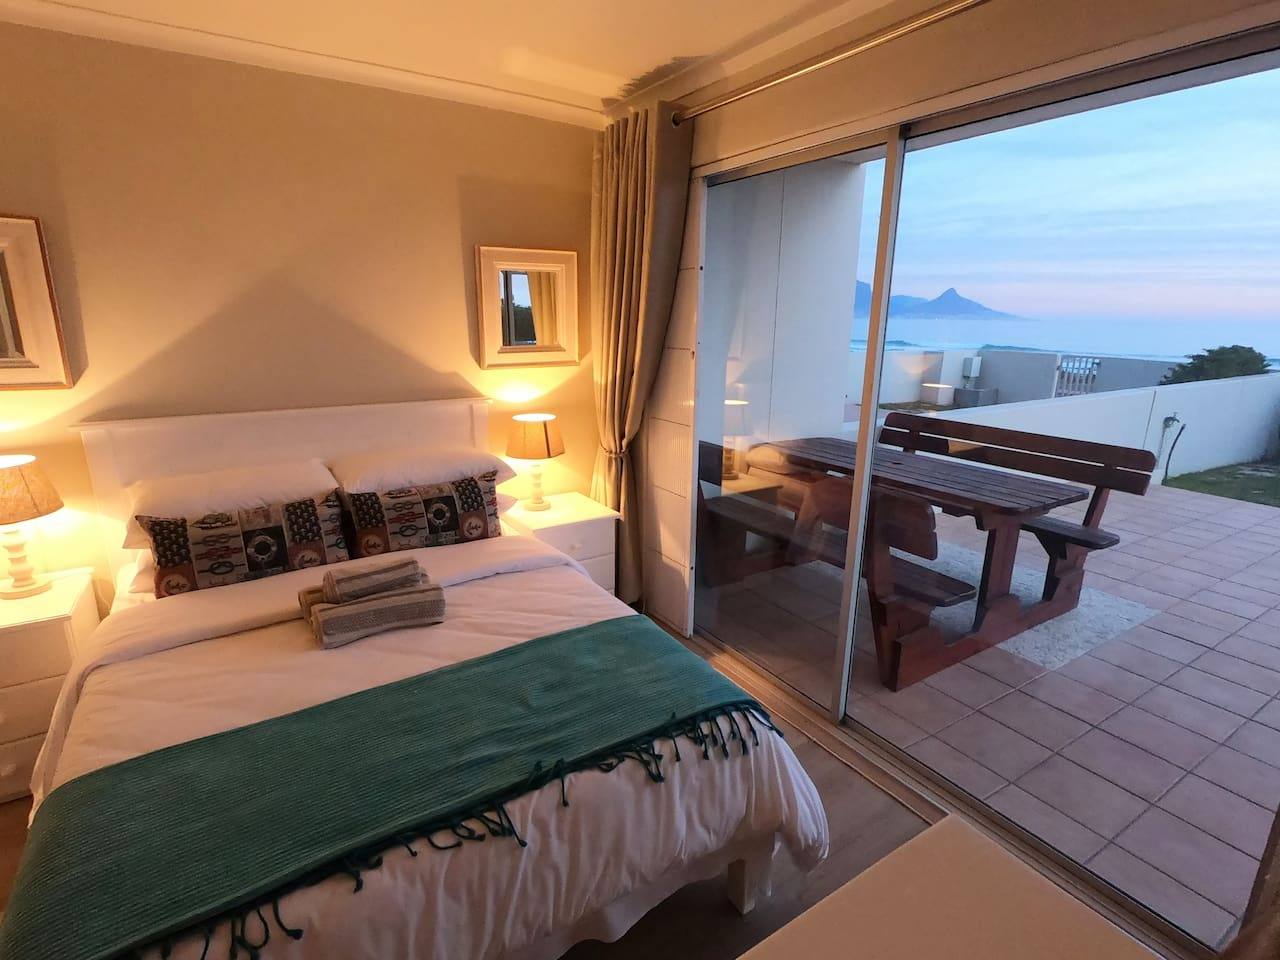 Bedroom with sea view & view of Table Mountain